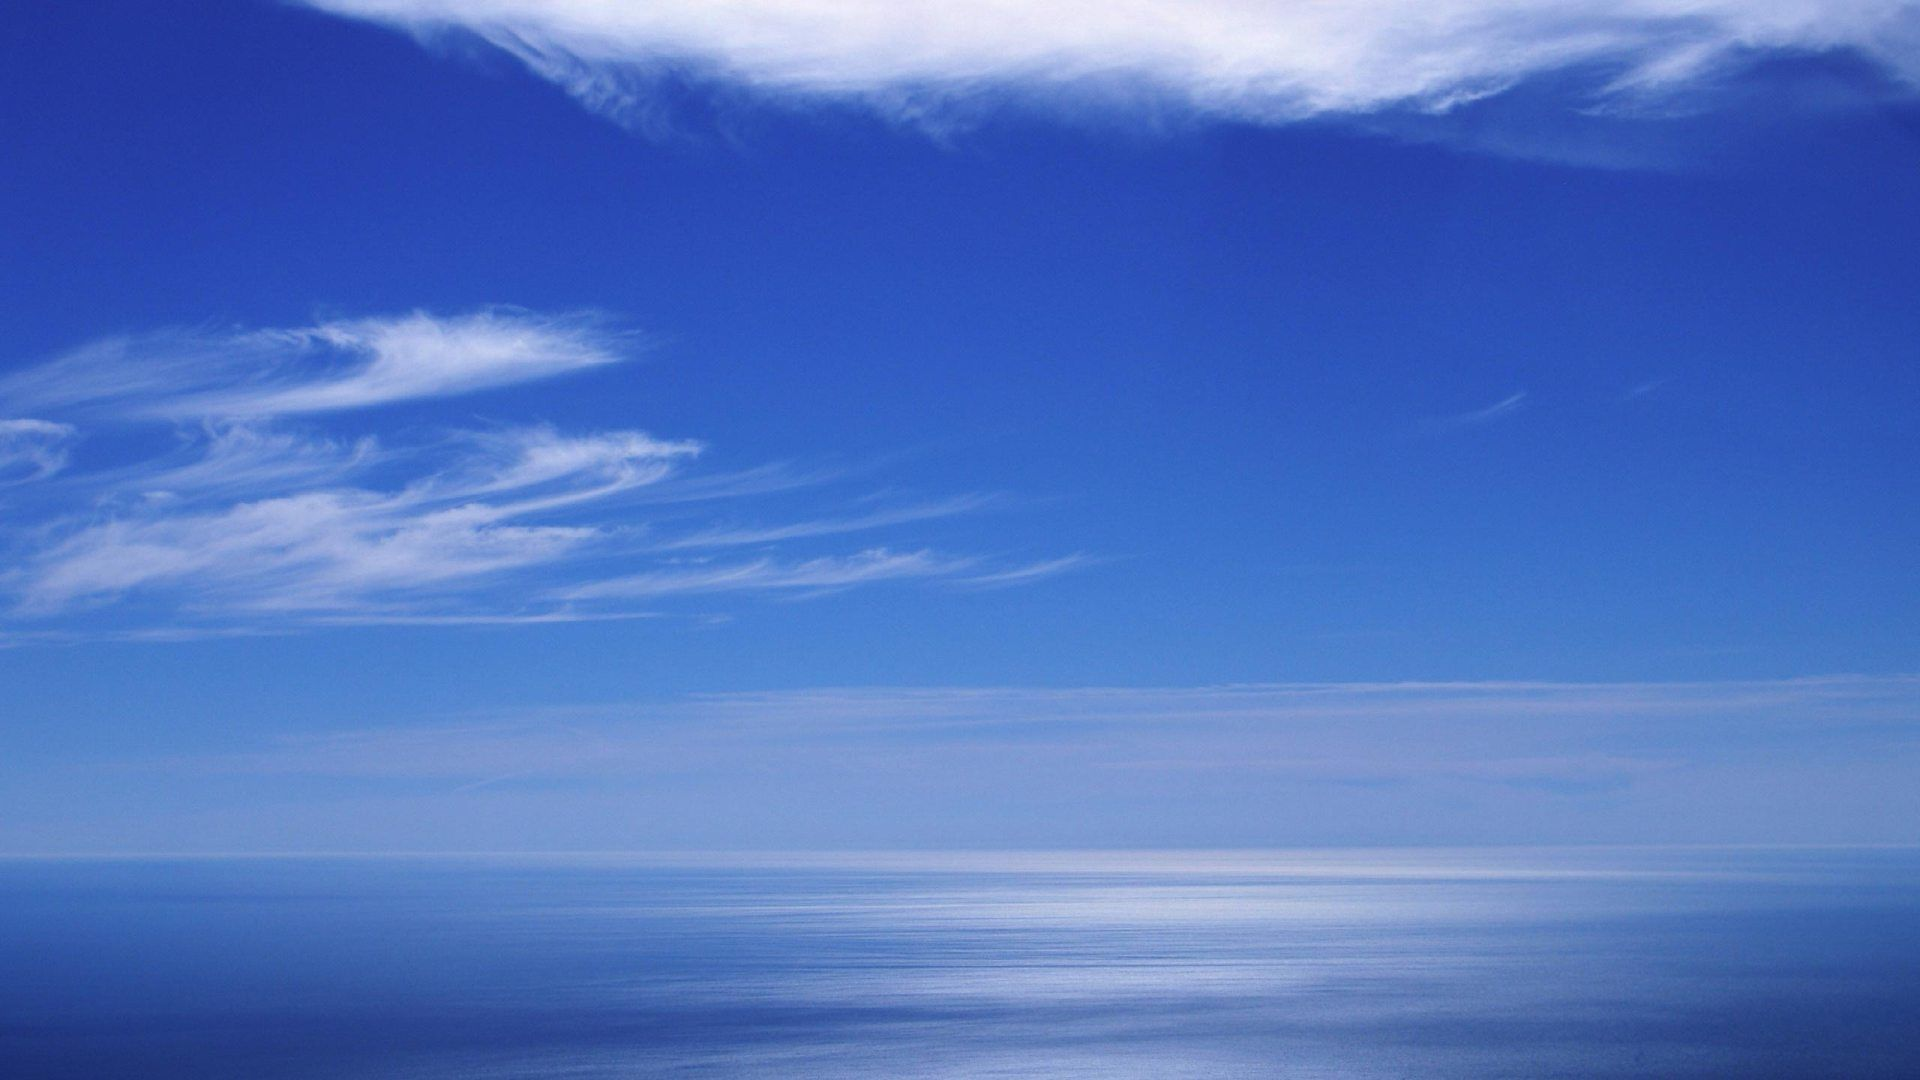 Sky Cool Wallpaper